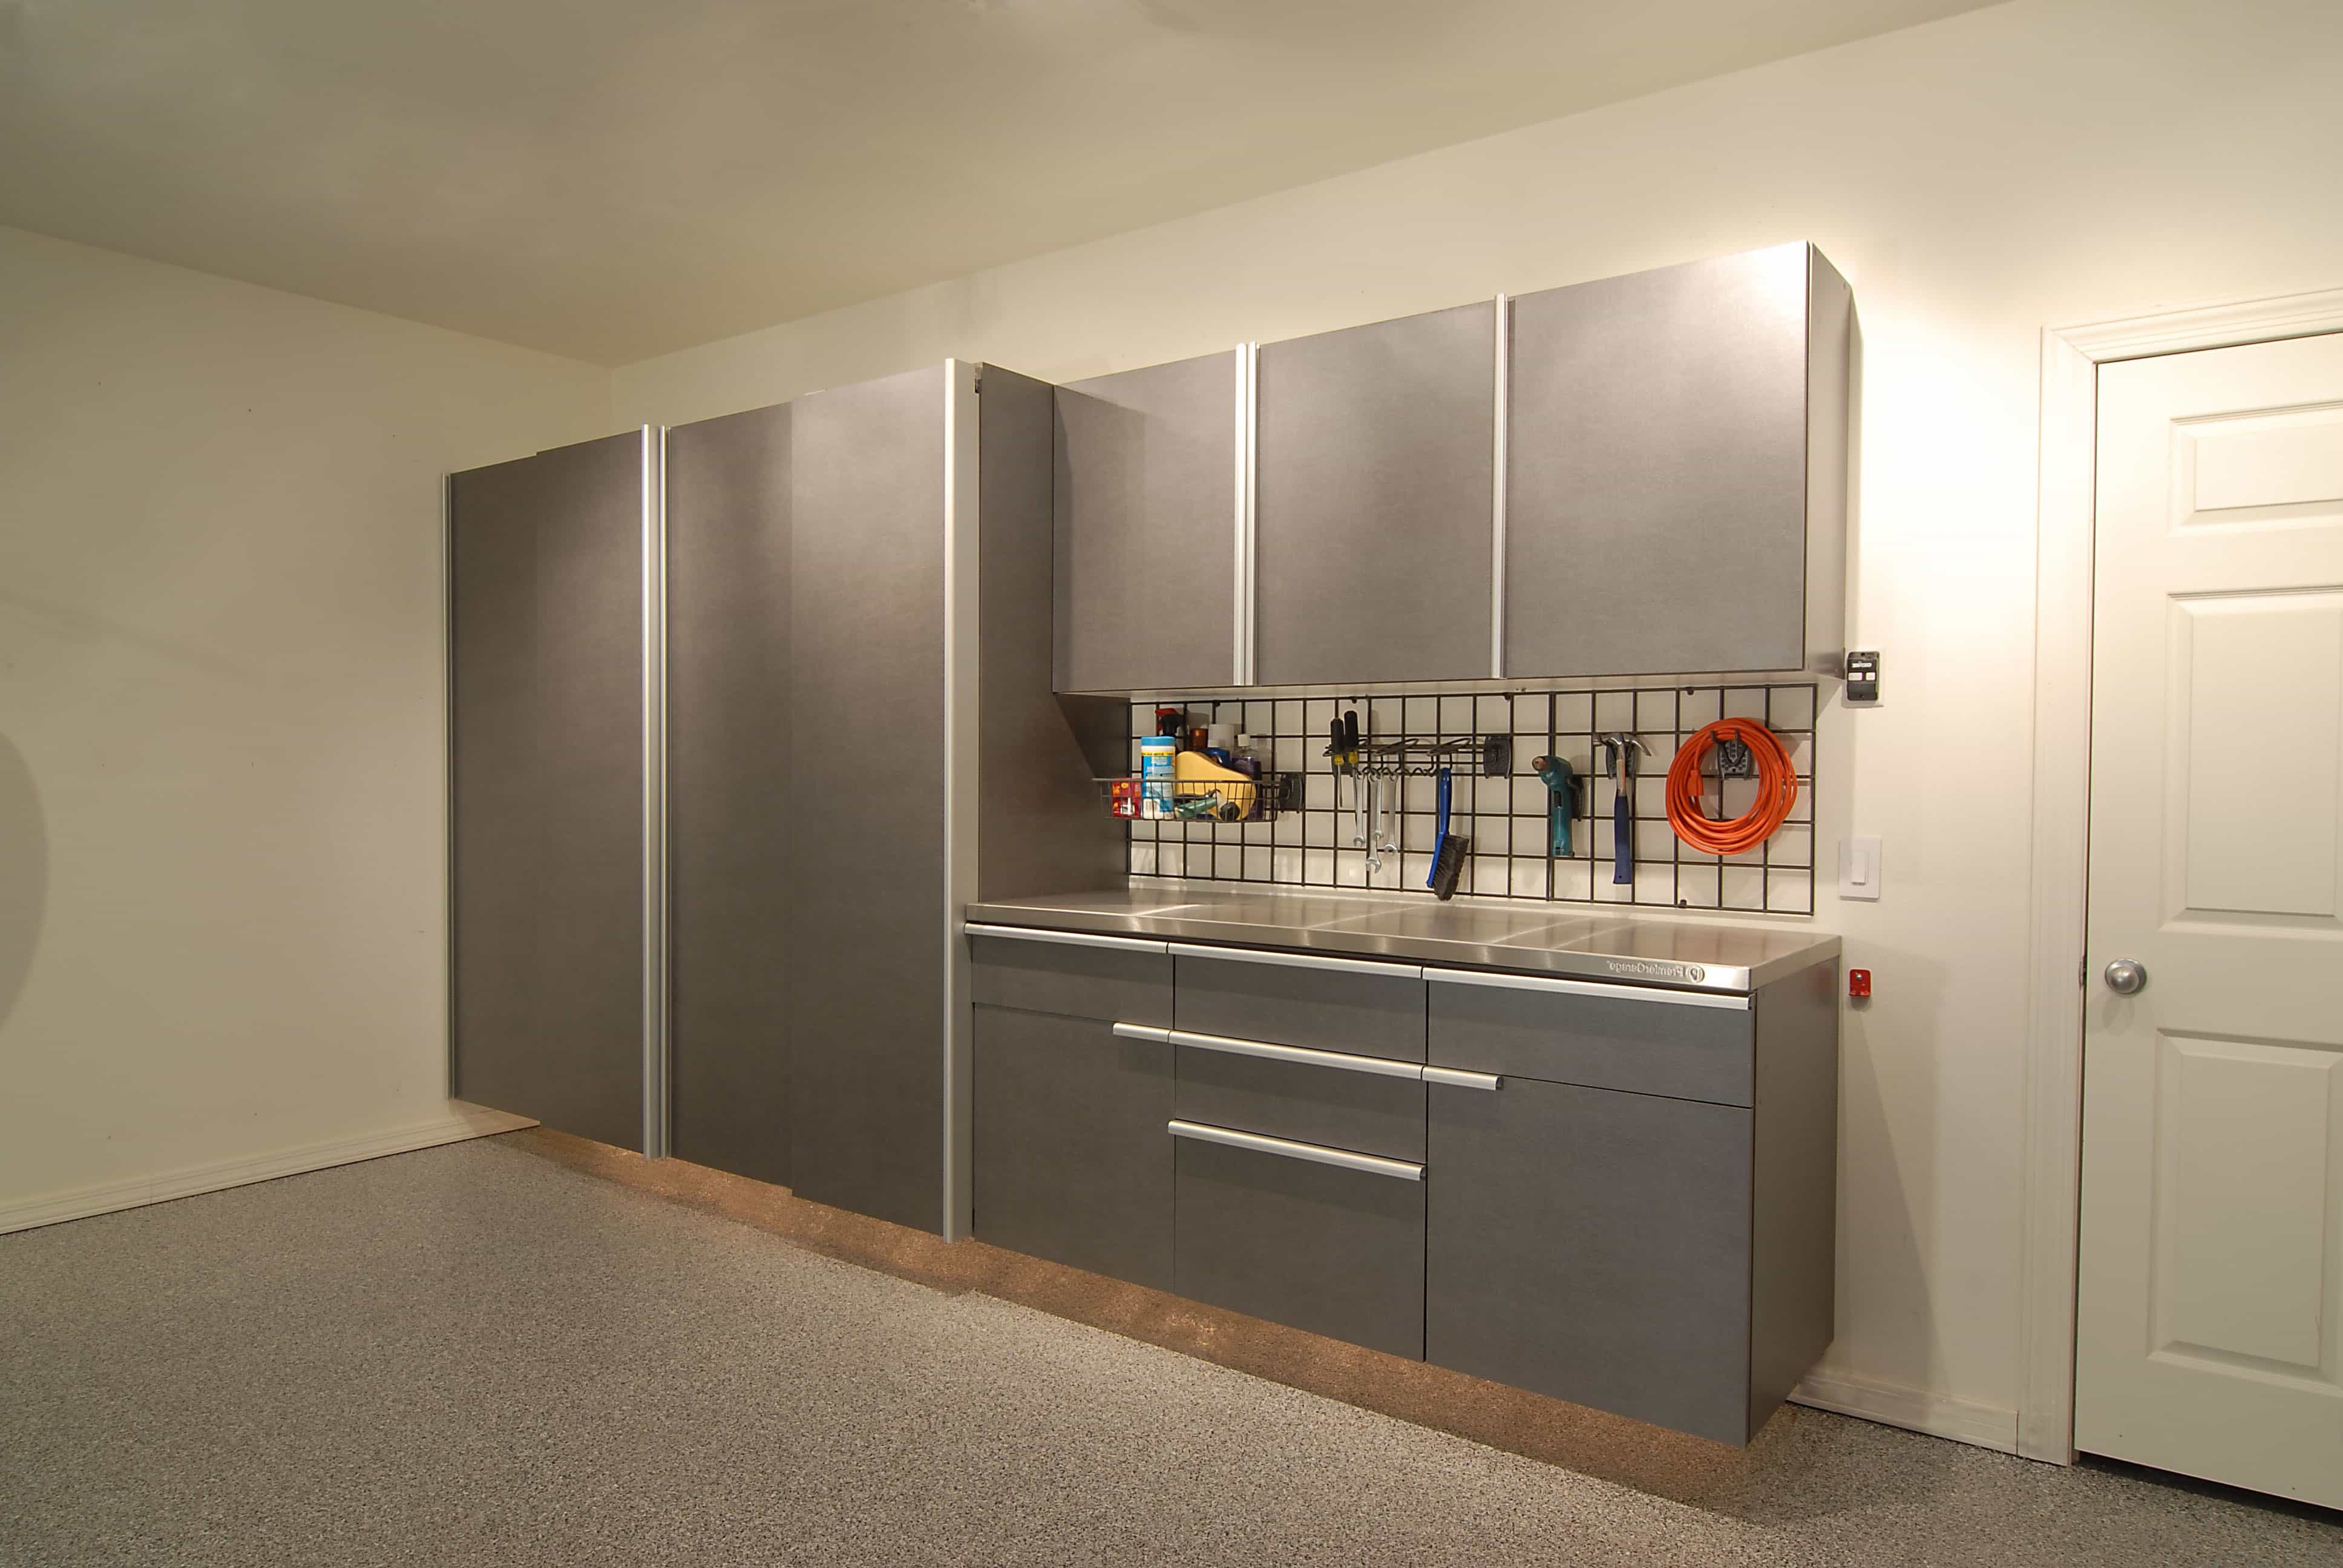 Minimalist Modern Garage Cabinets And Shelves (View 7 of 10)